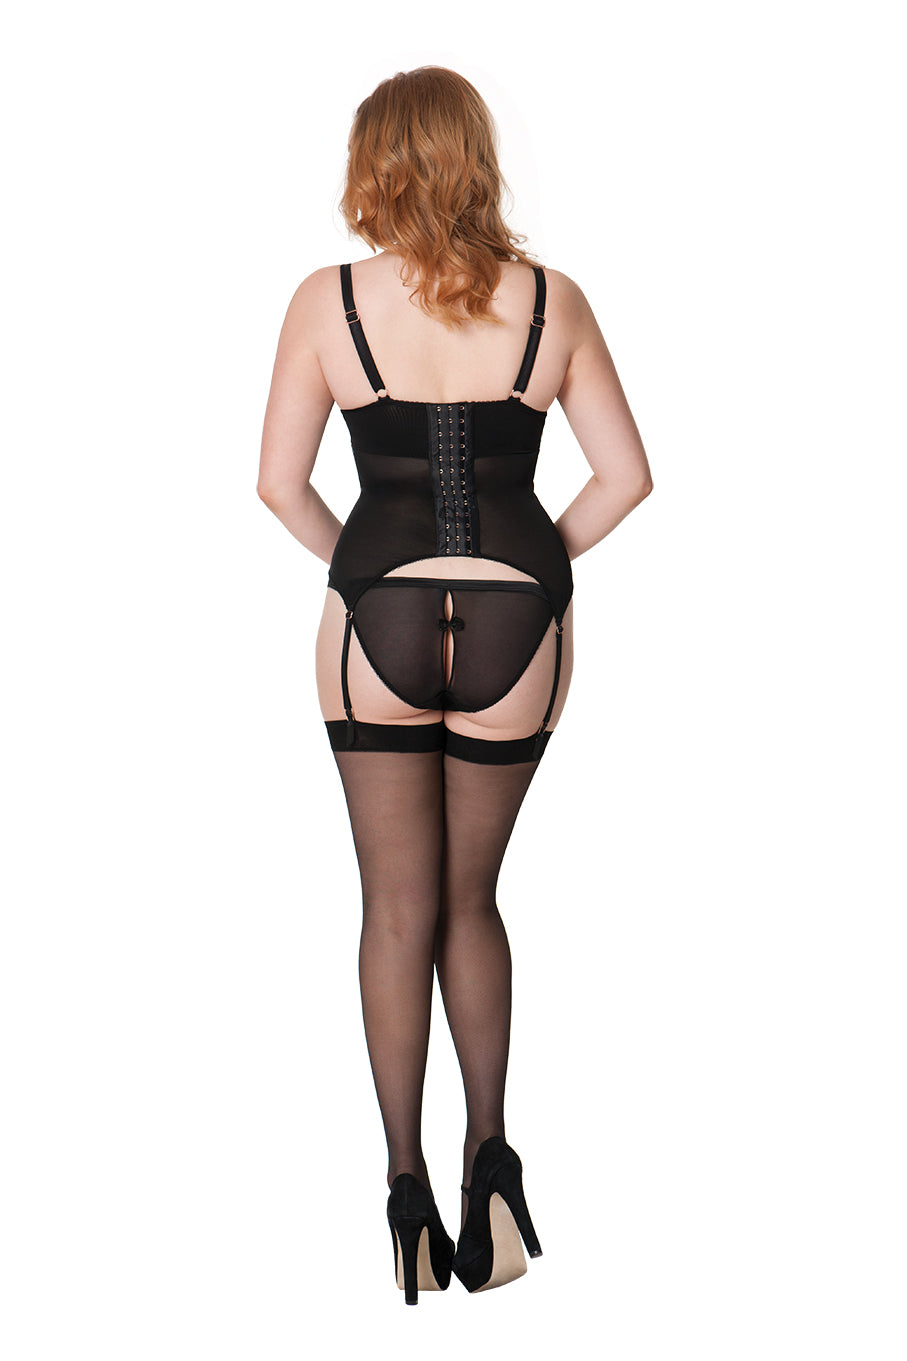 Scantilly by Curvy KateSurrender Basque ST2407